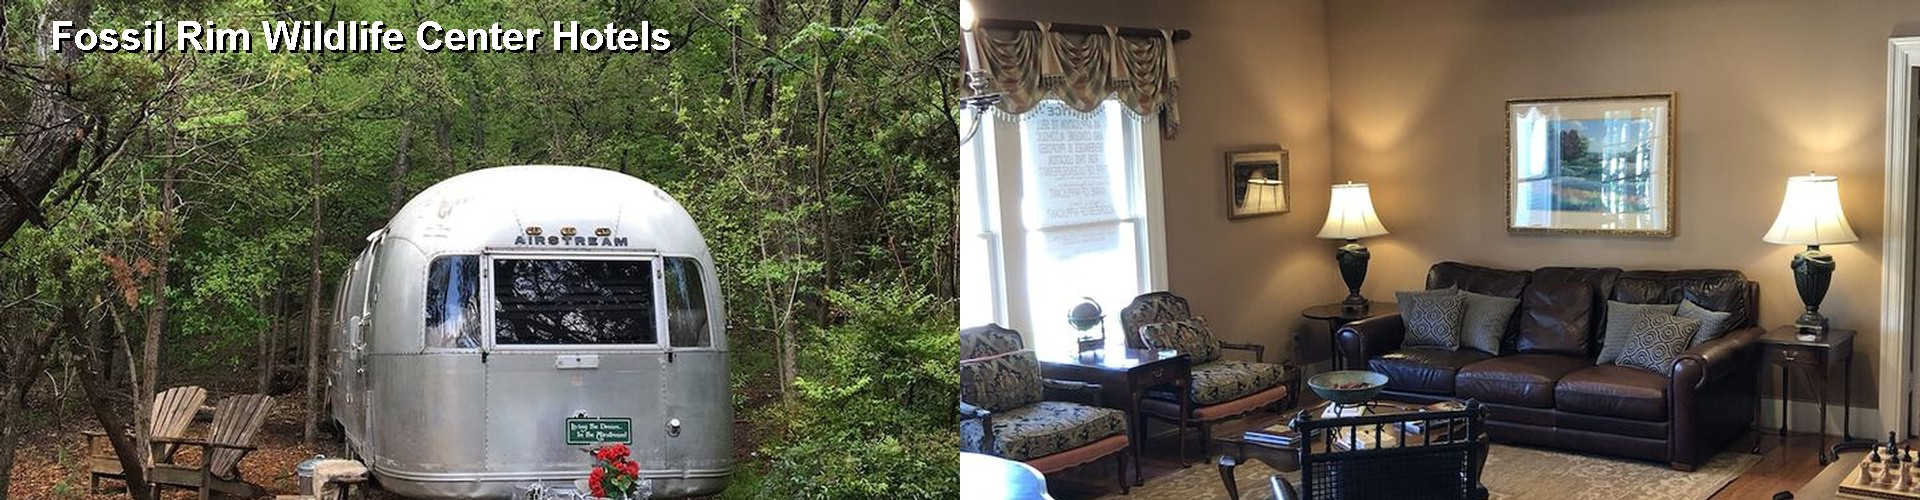 5 Best Hotels near Fossil Rim Wildlife Center